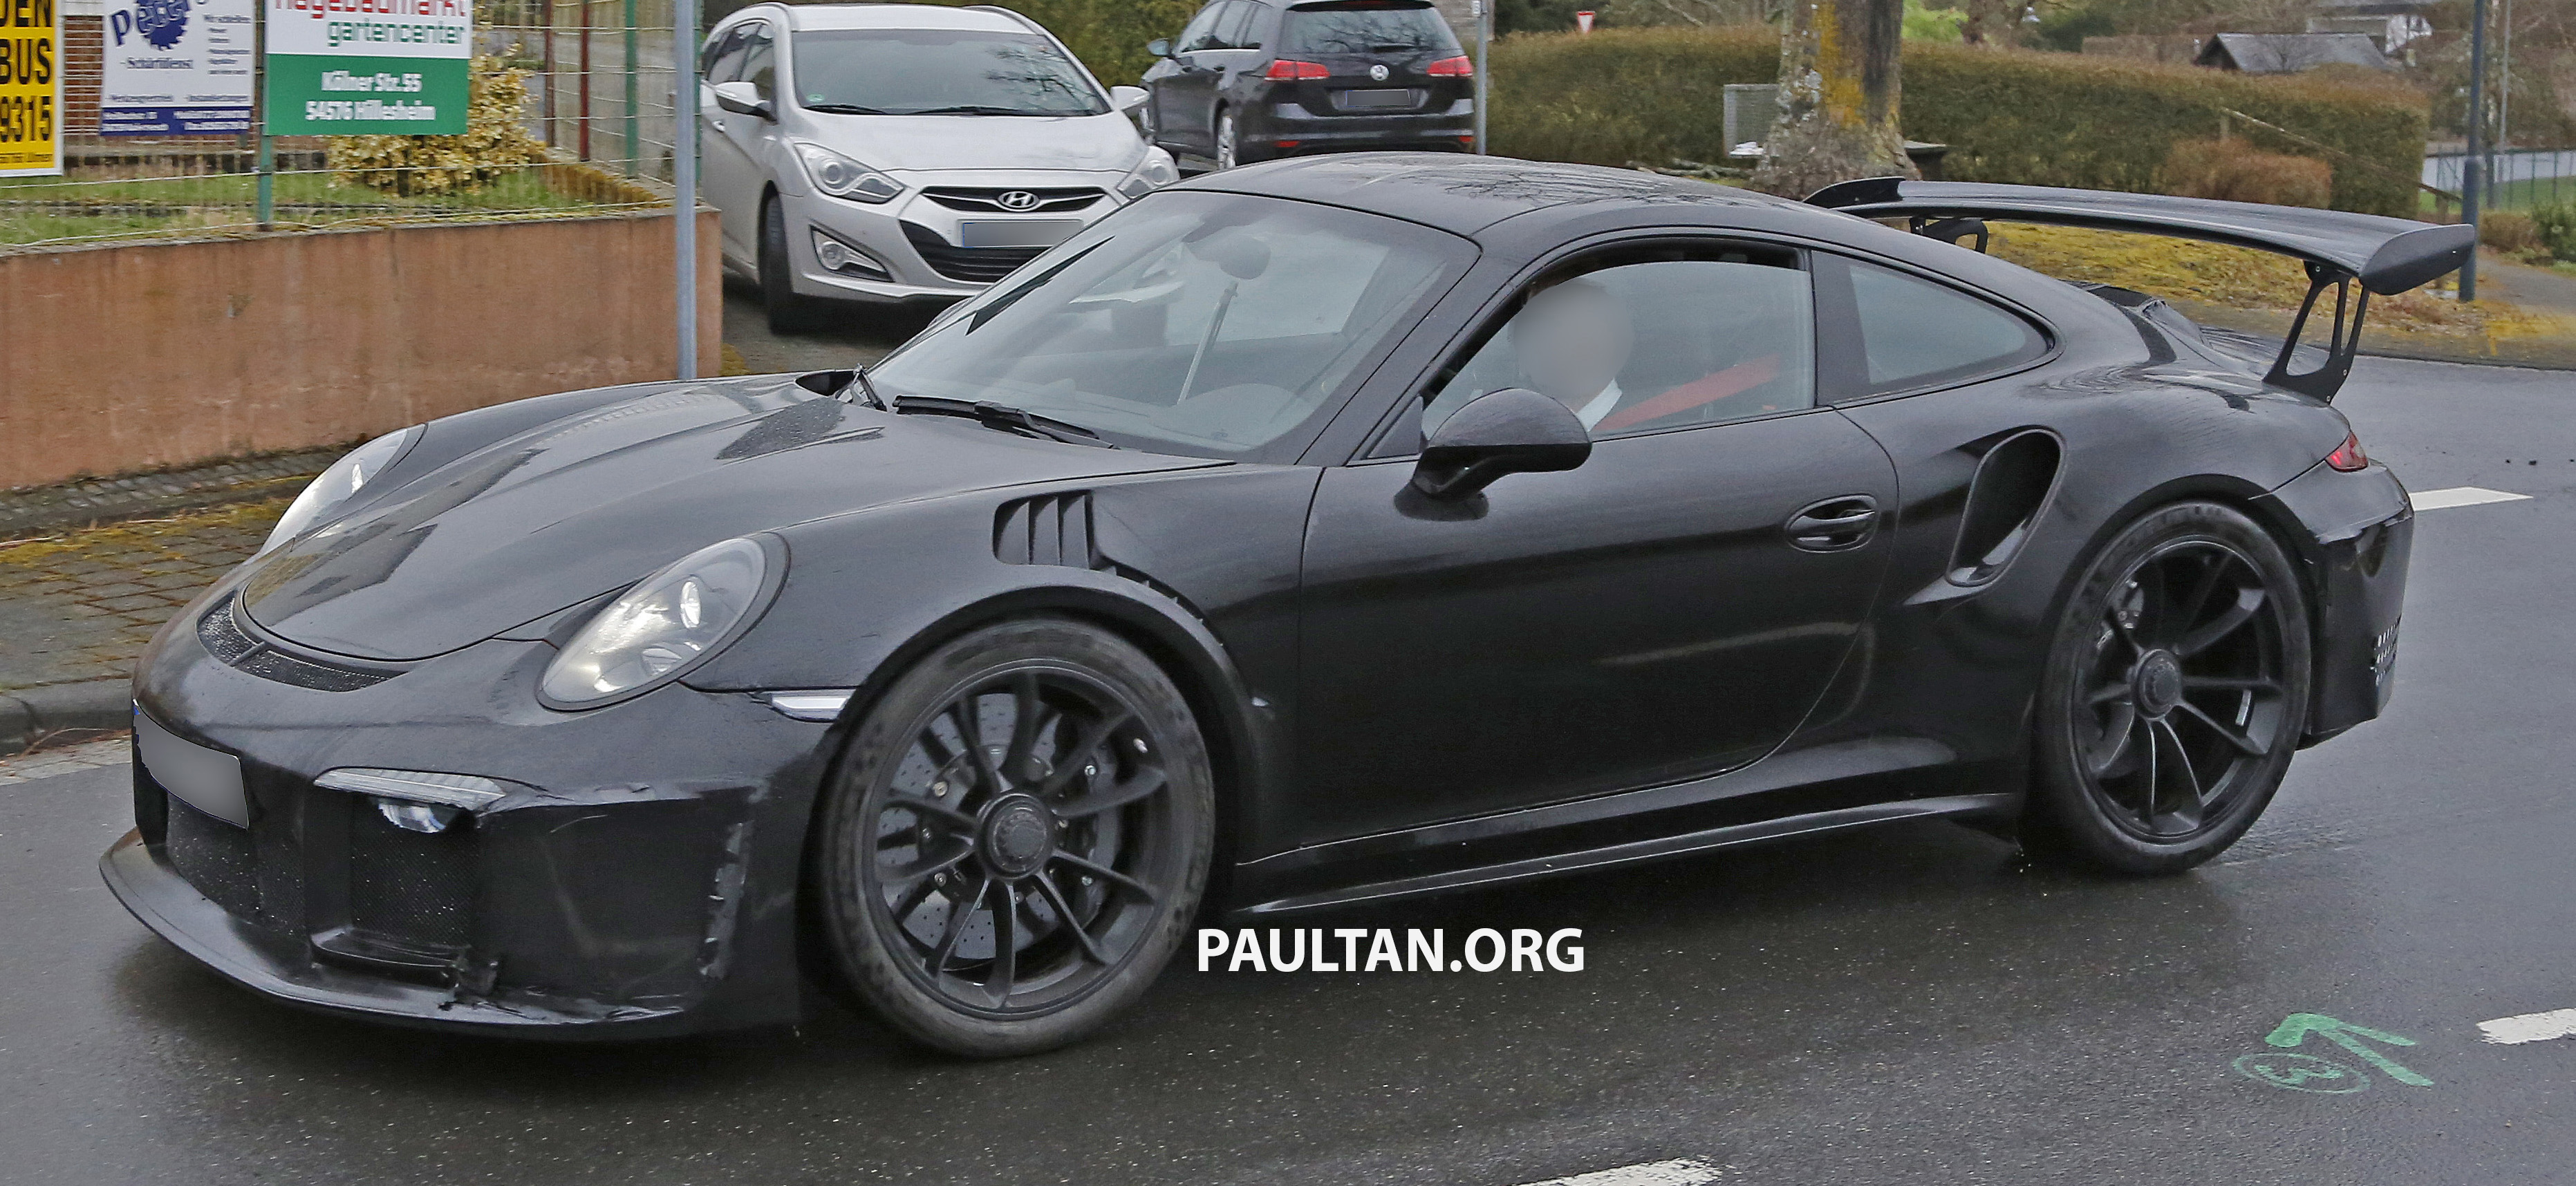 Spied Porsche 911 Gt3 Rs Facelift Bigger Engine Image